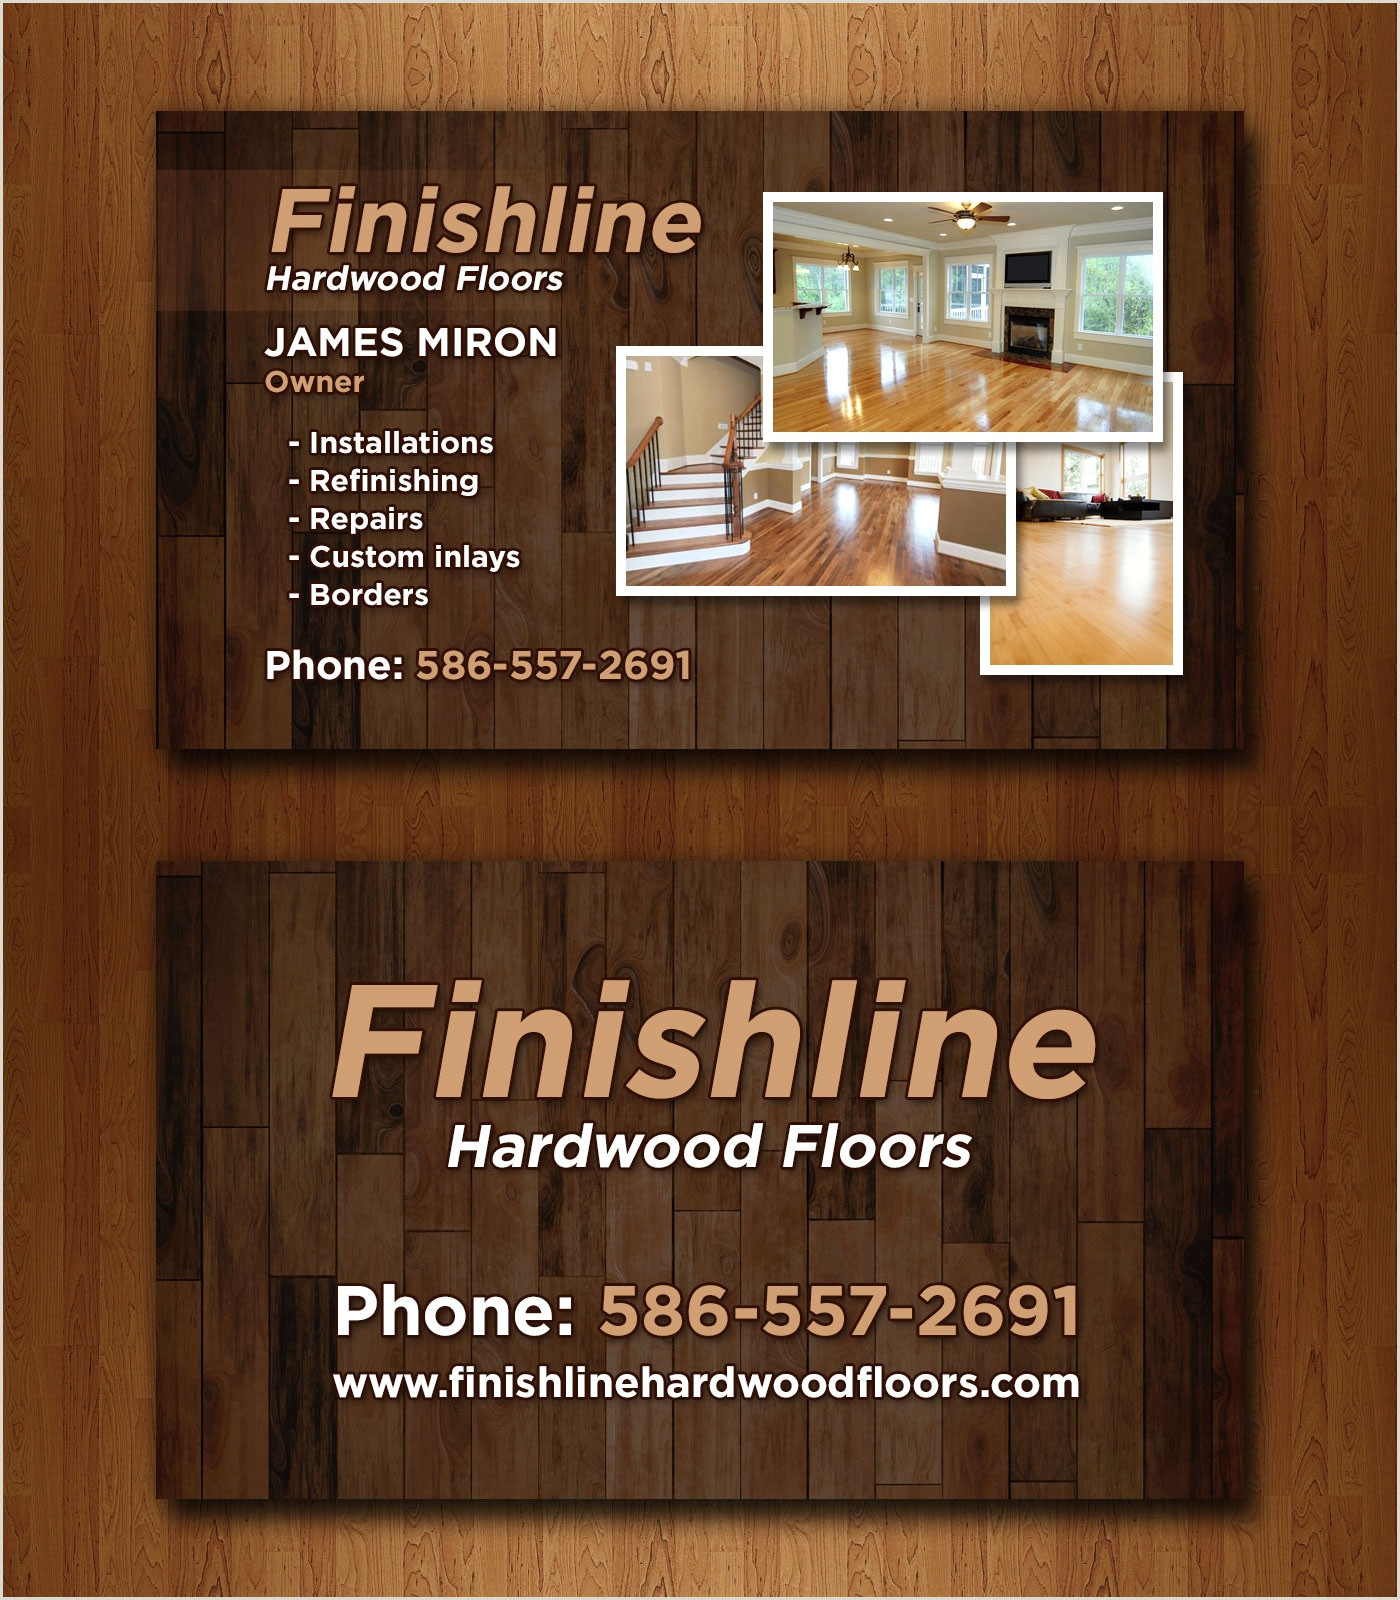 Black And Gold Business Card Template 14 Popular Hardwood Flooring Business Card Template